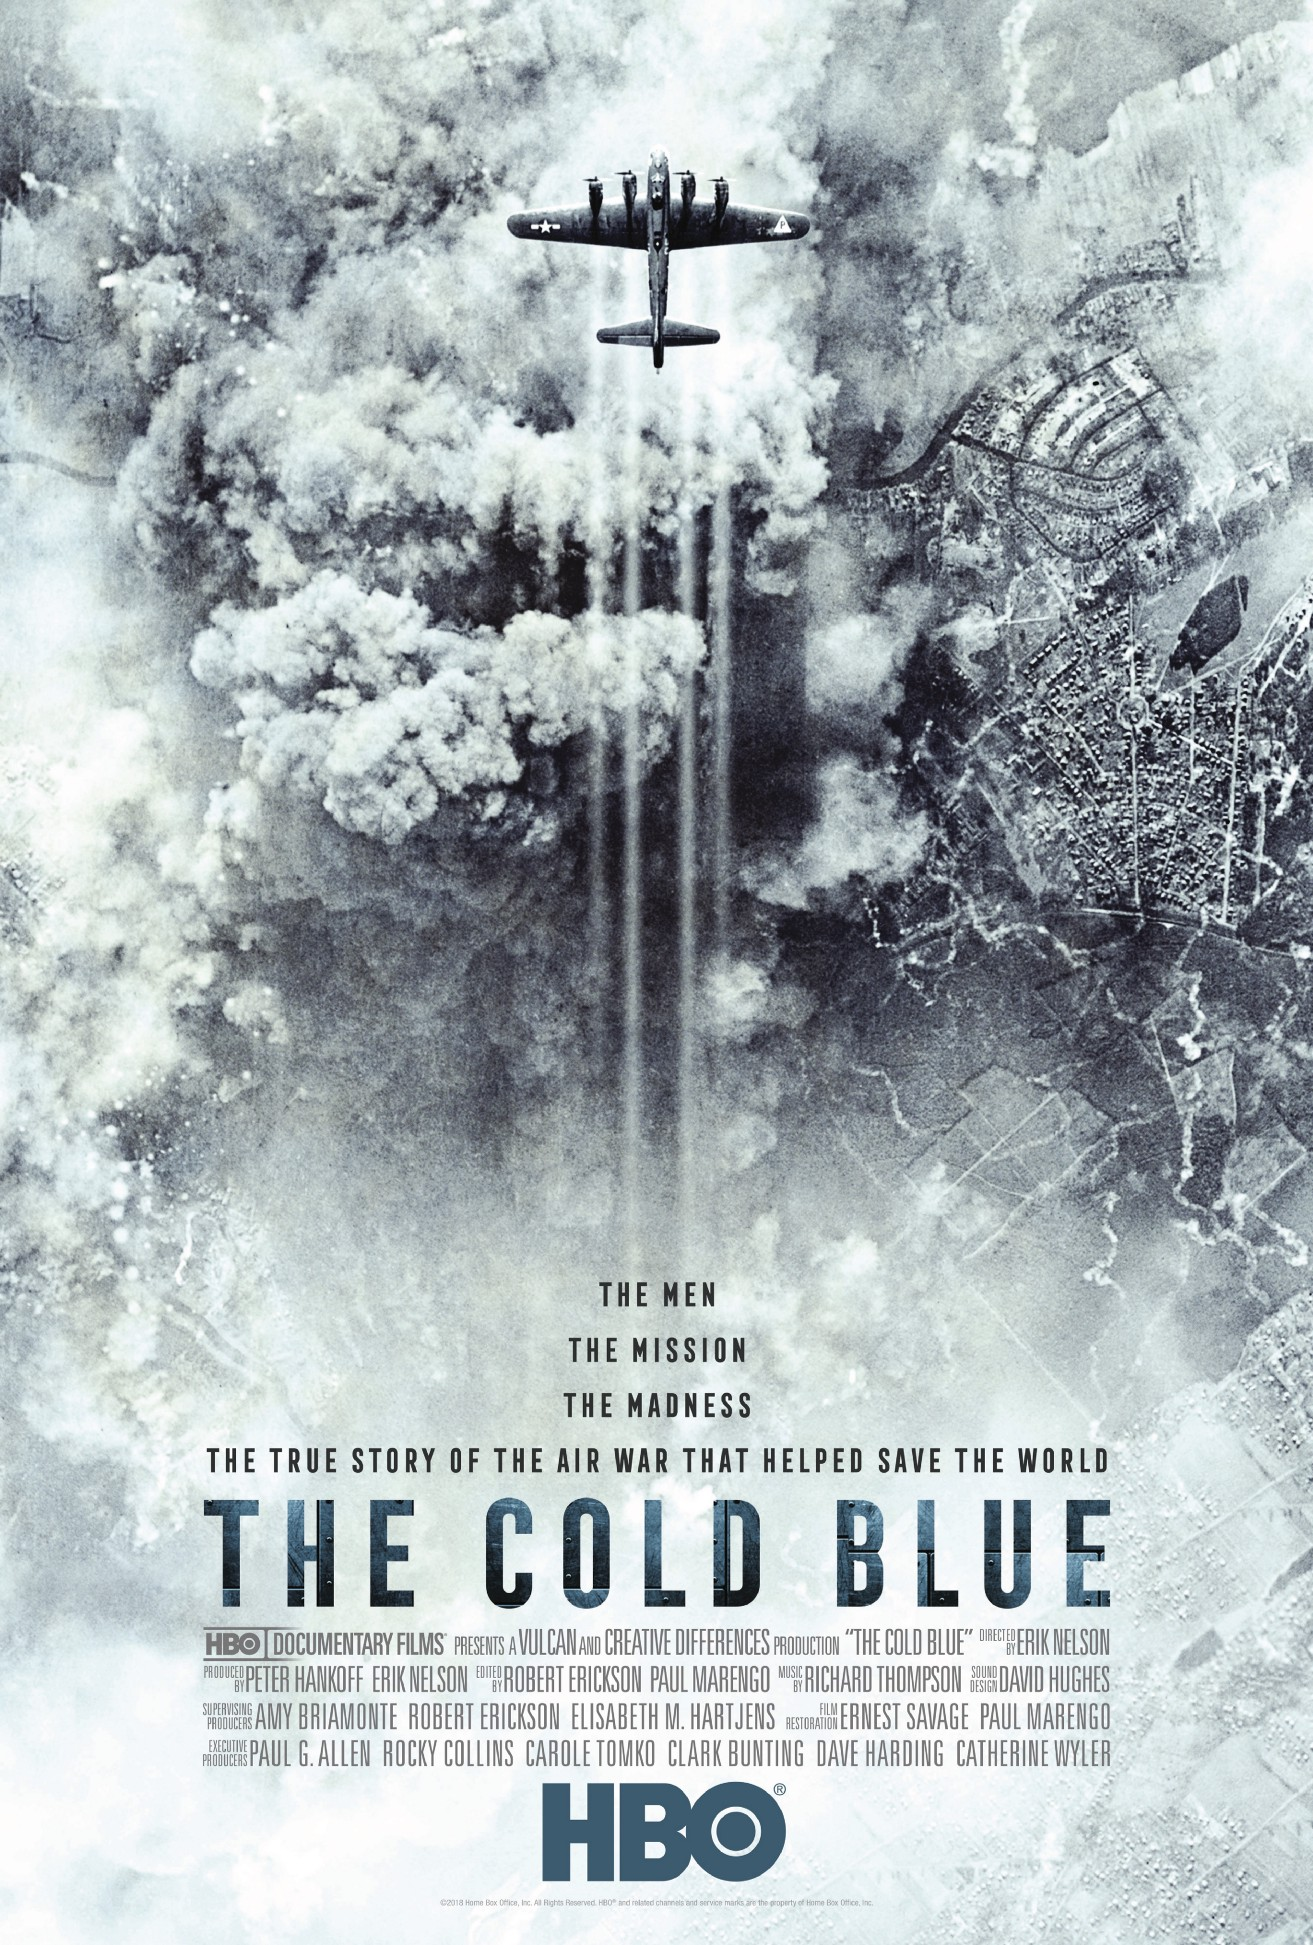 Innovative World War II Documentary THE COLD BLUE, from Director